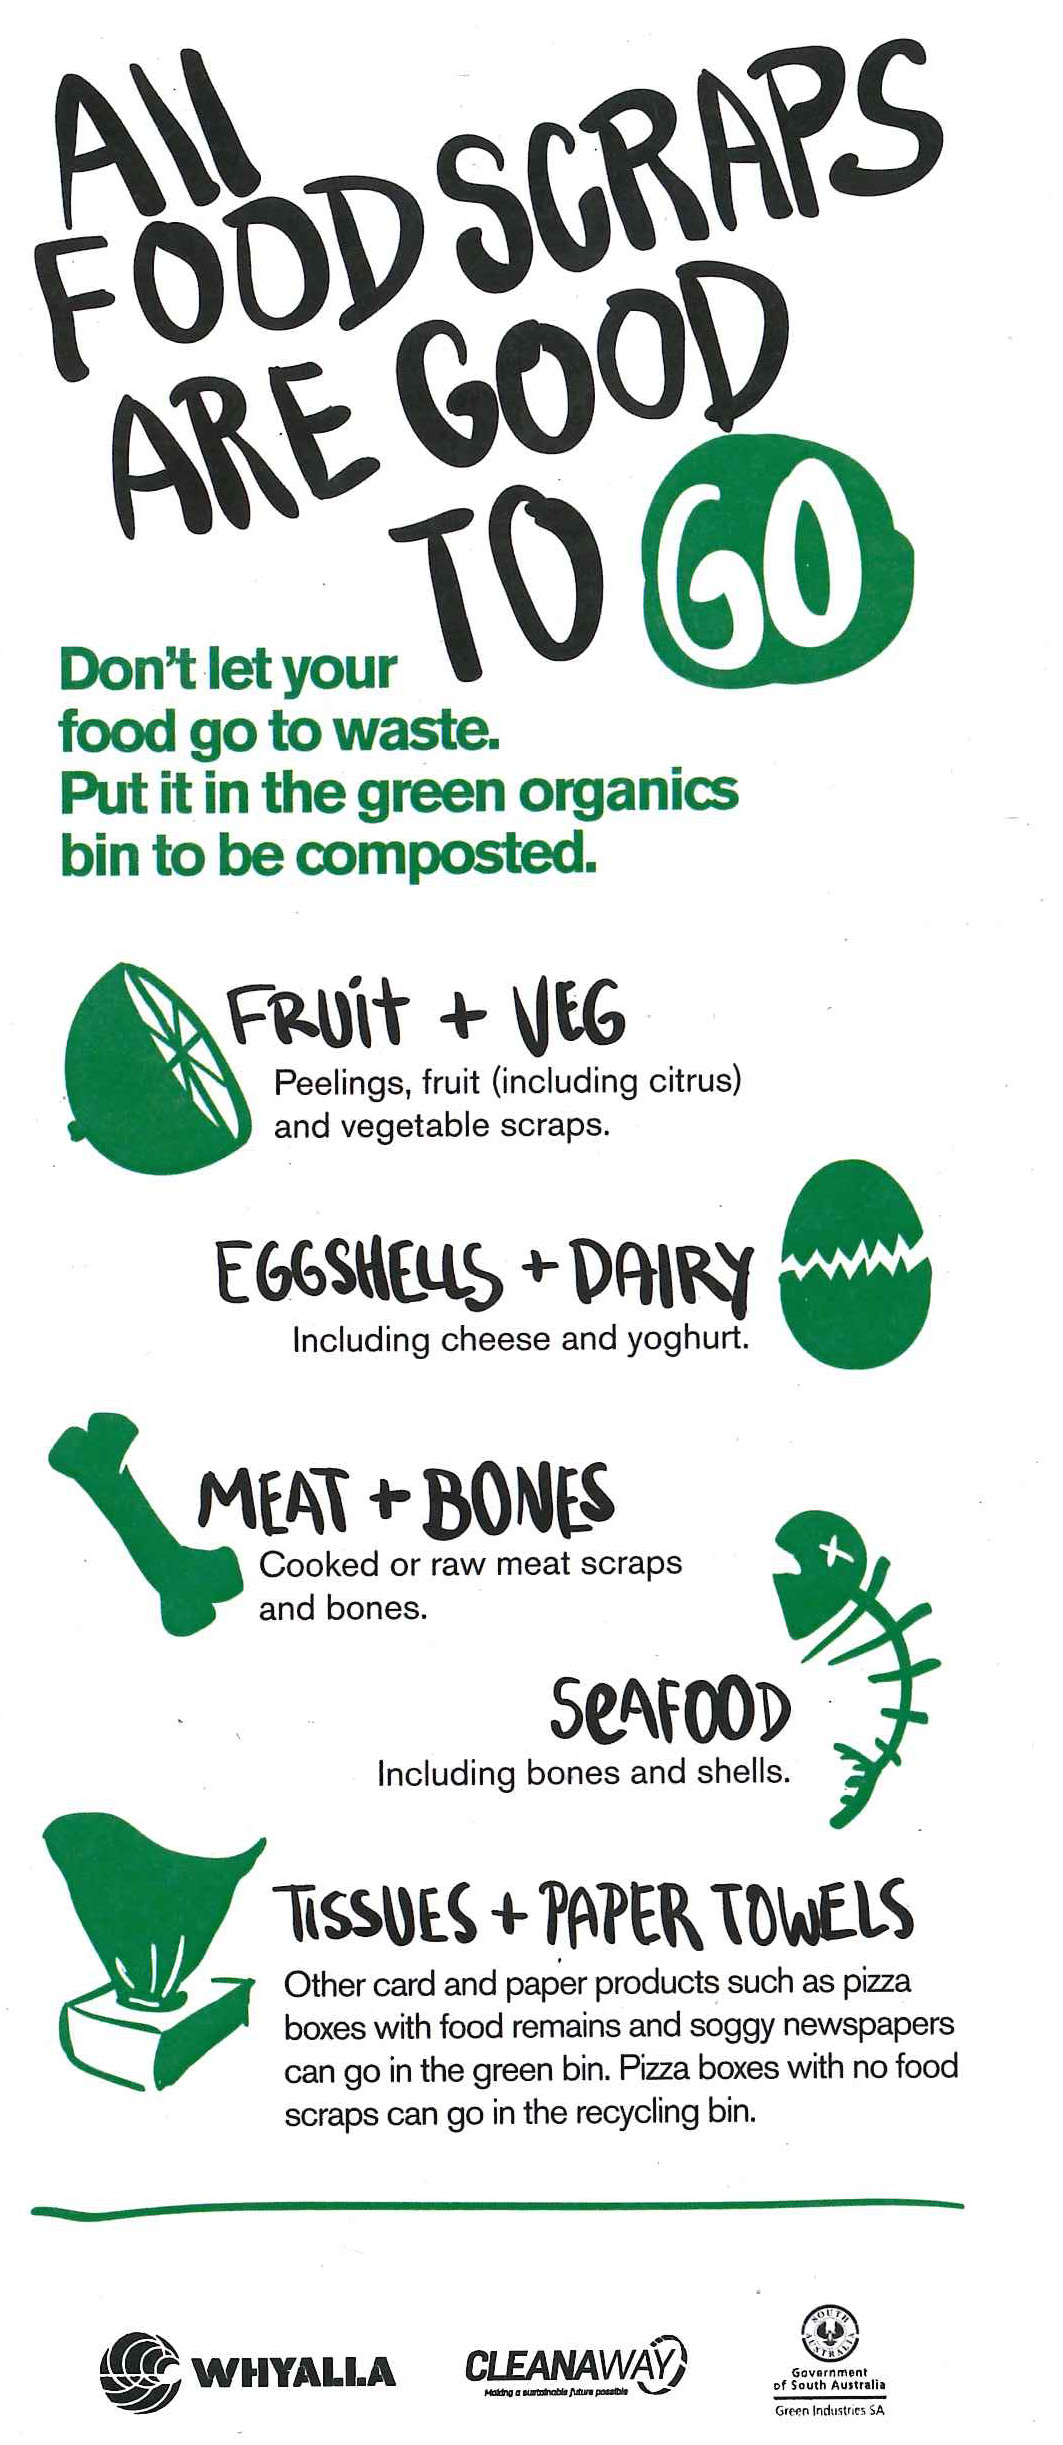 All Food Scraps Are Good To Go